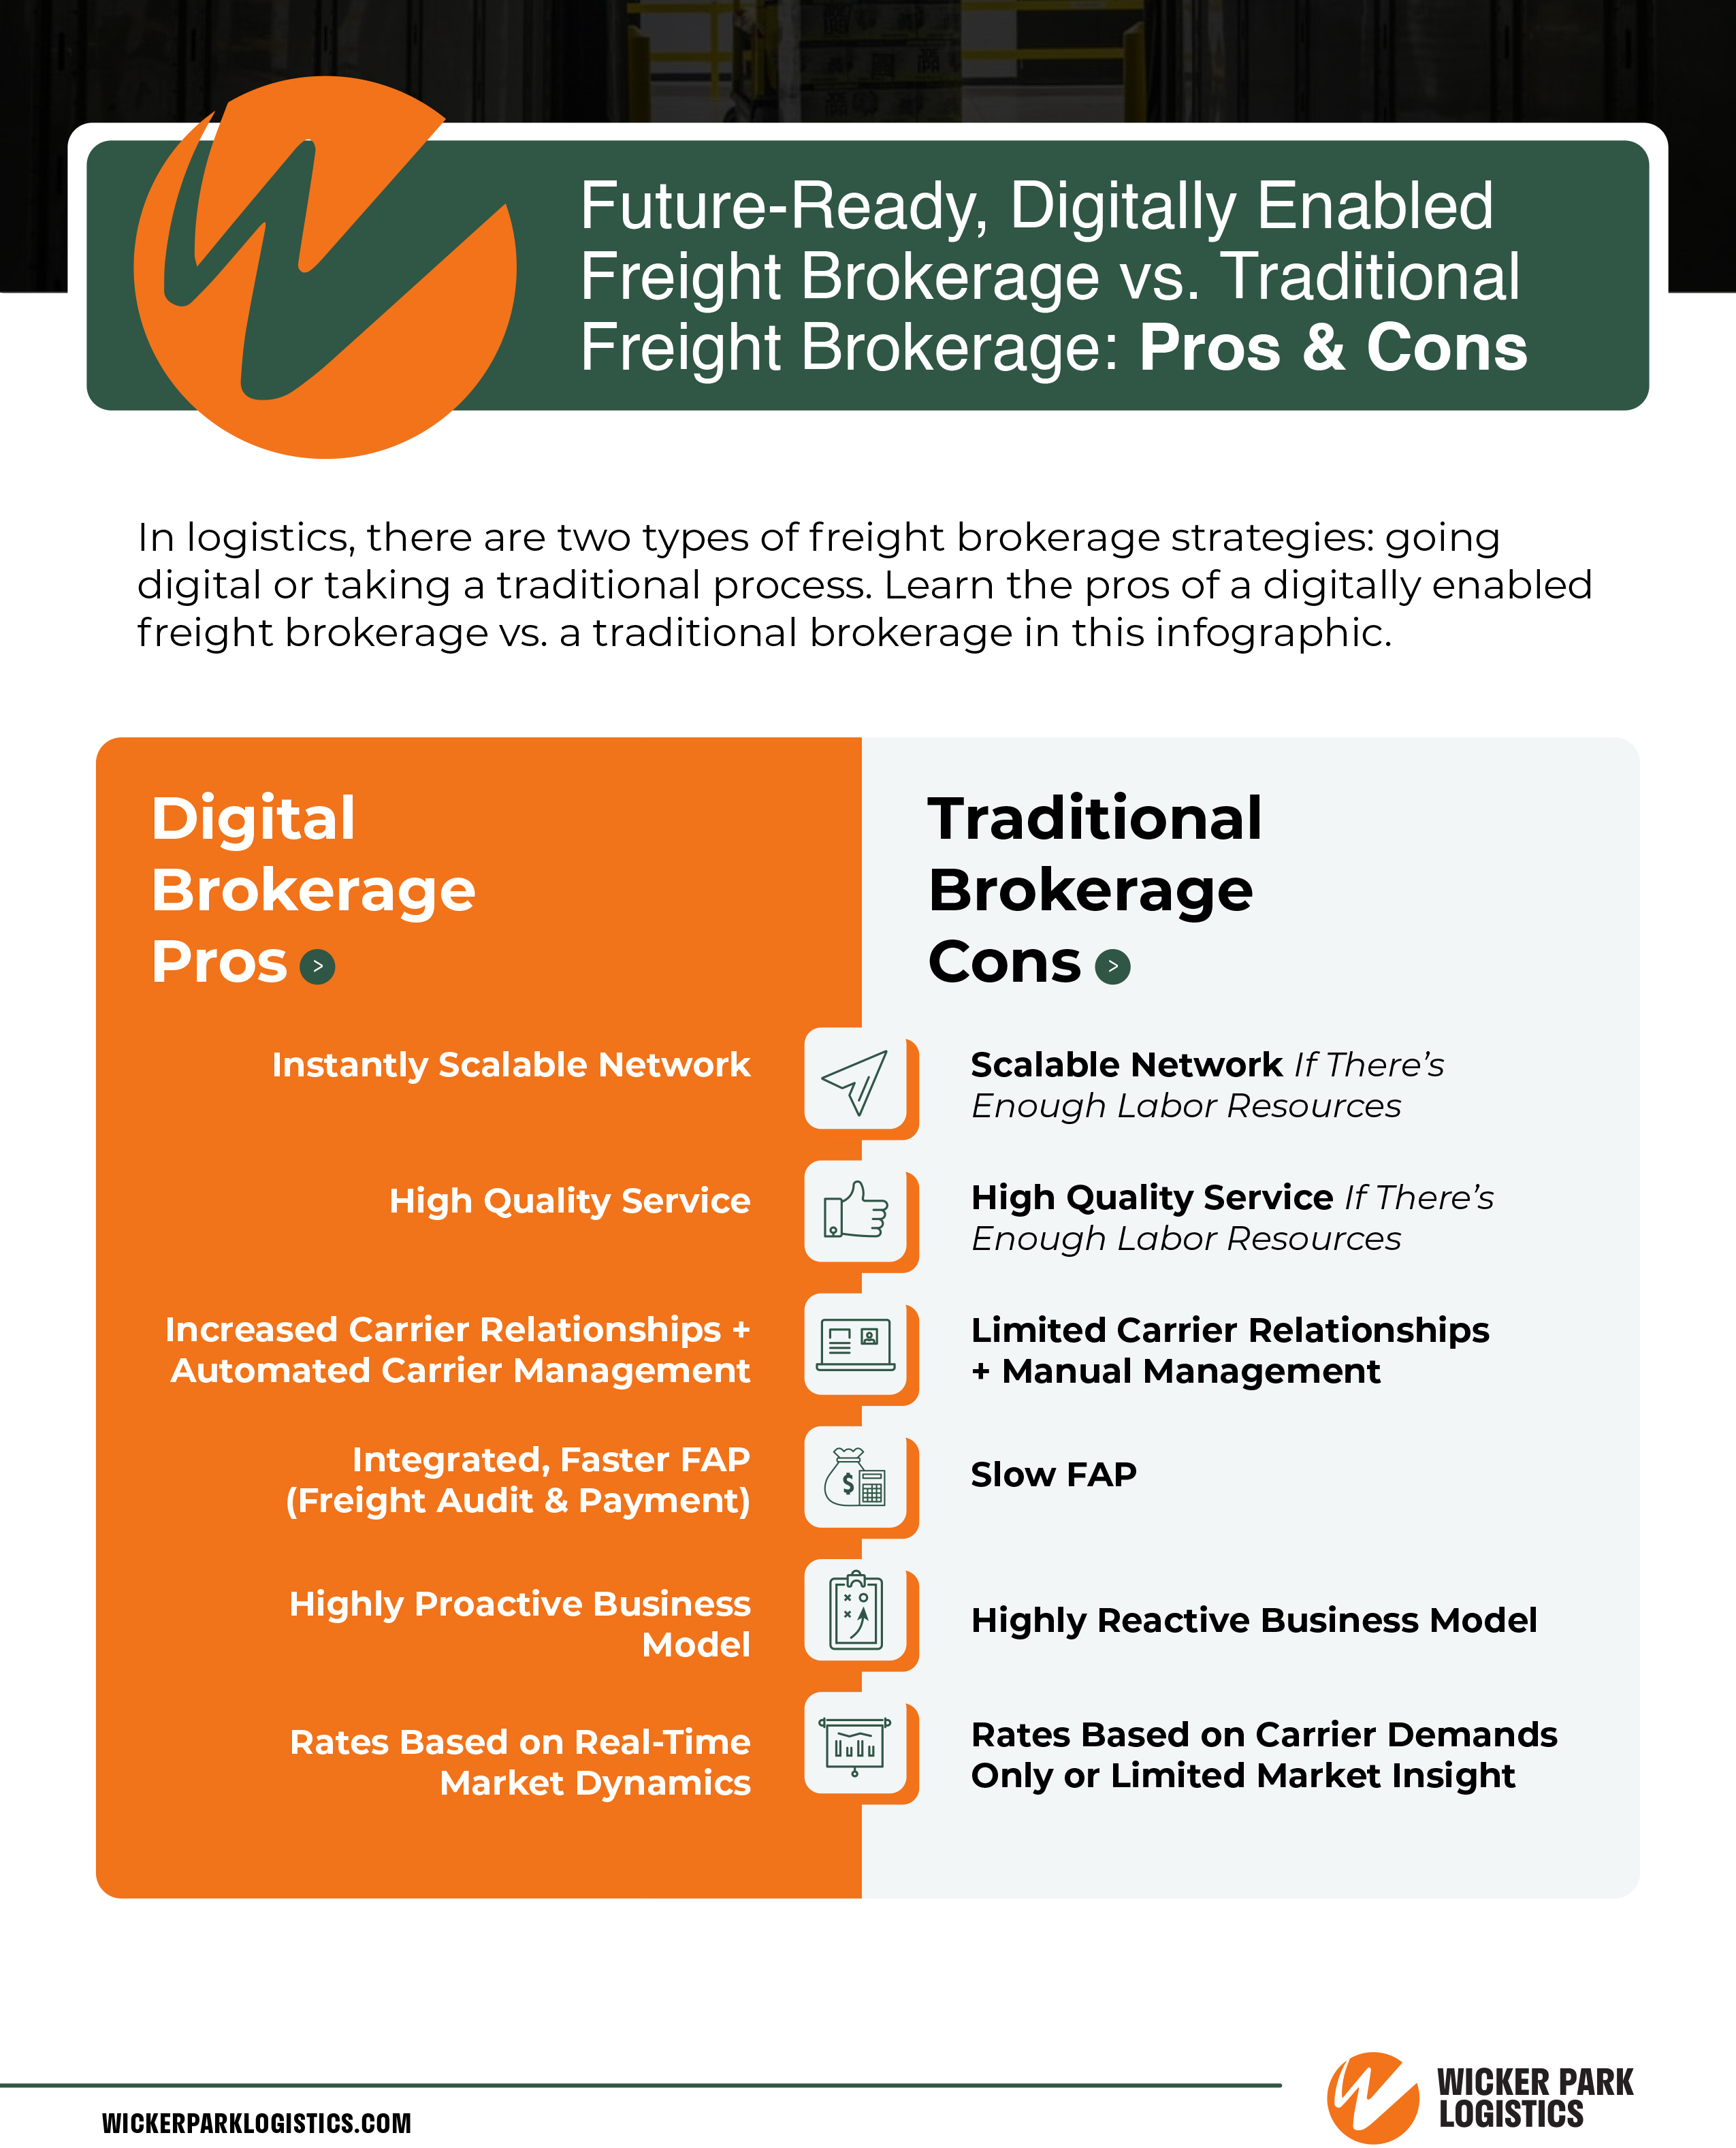 Digitally Enabled Freight Brokerage Vs. Traditional Freight Brokerage Infographic.